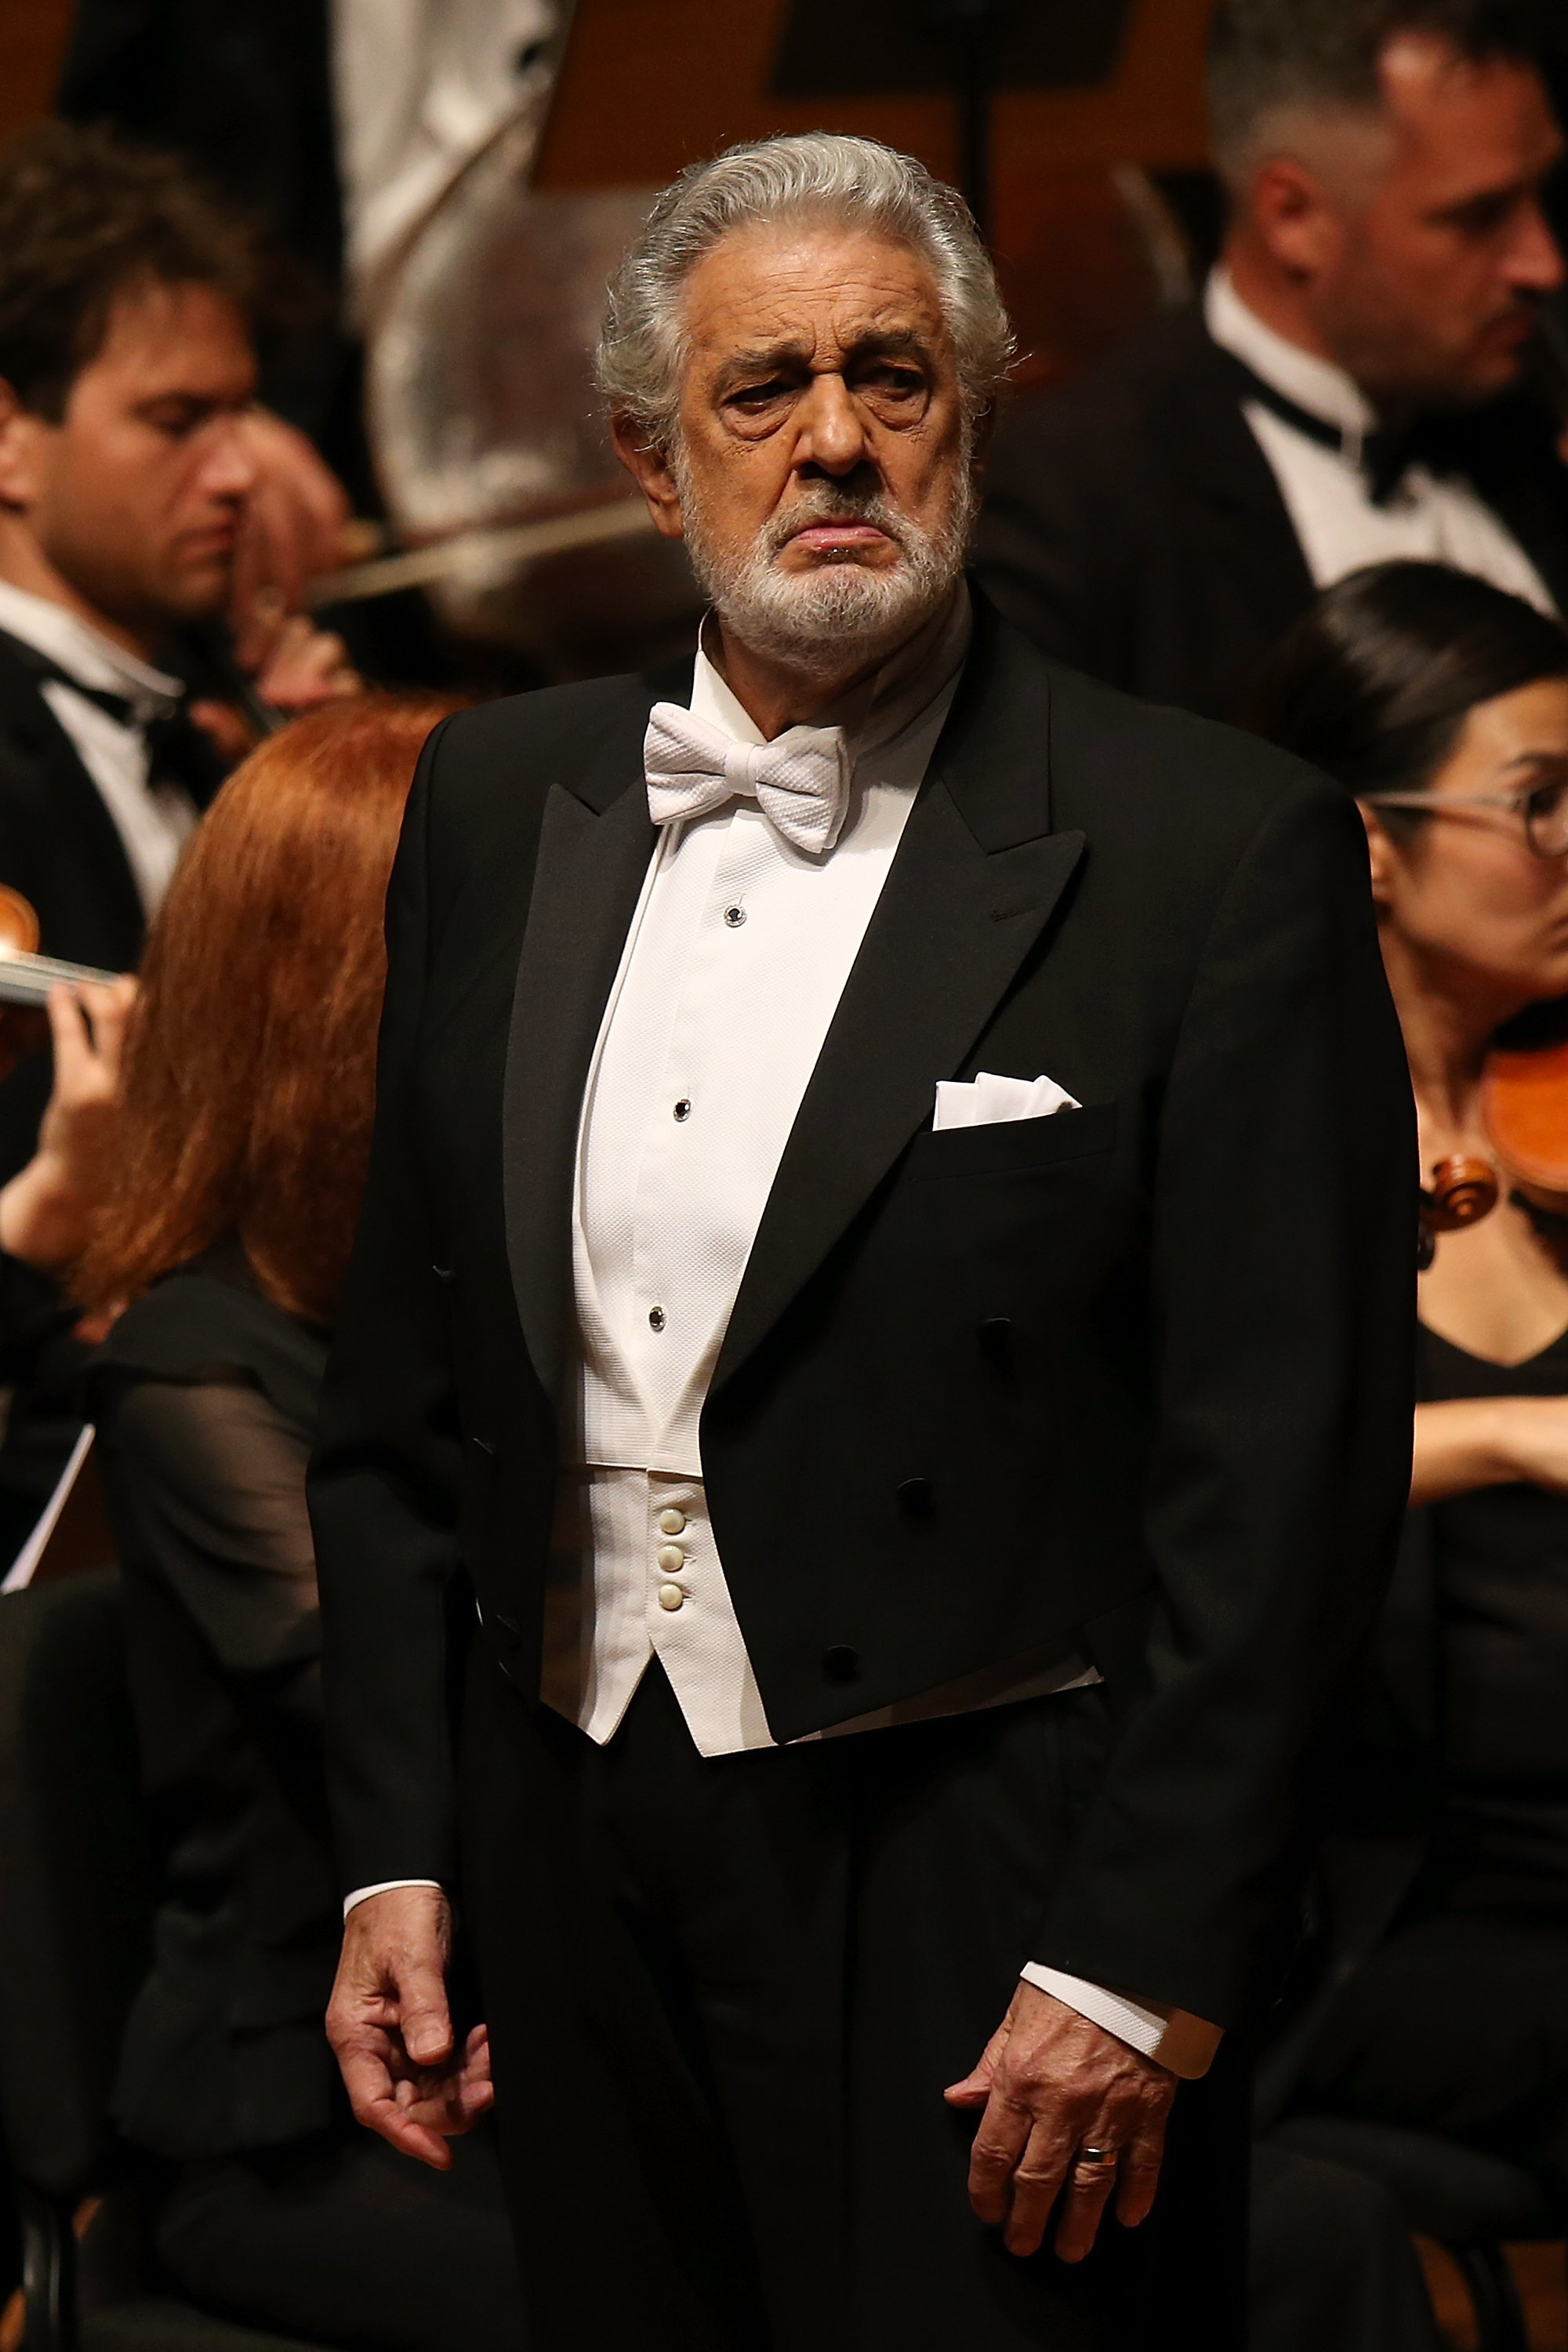 Placido Domingo sur scène pendant le concert Nabucco | Source : Getty Images